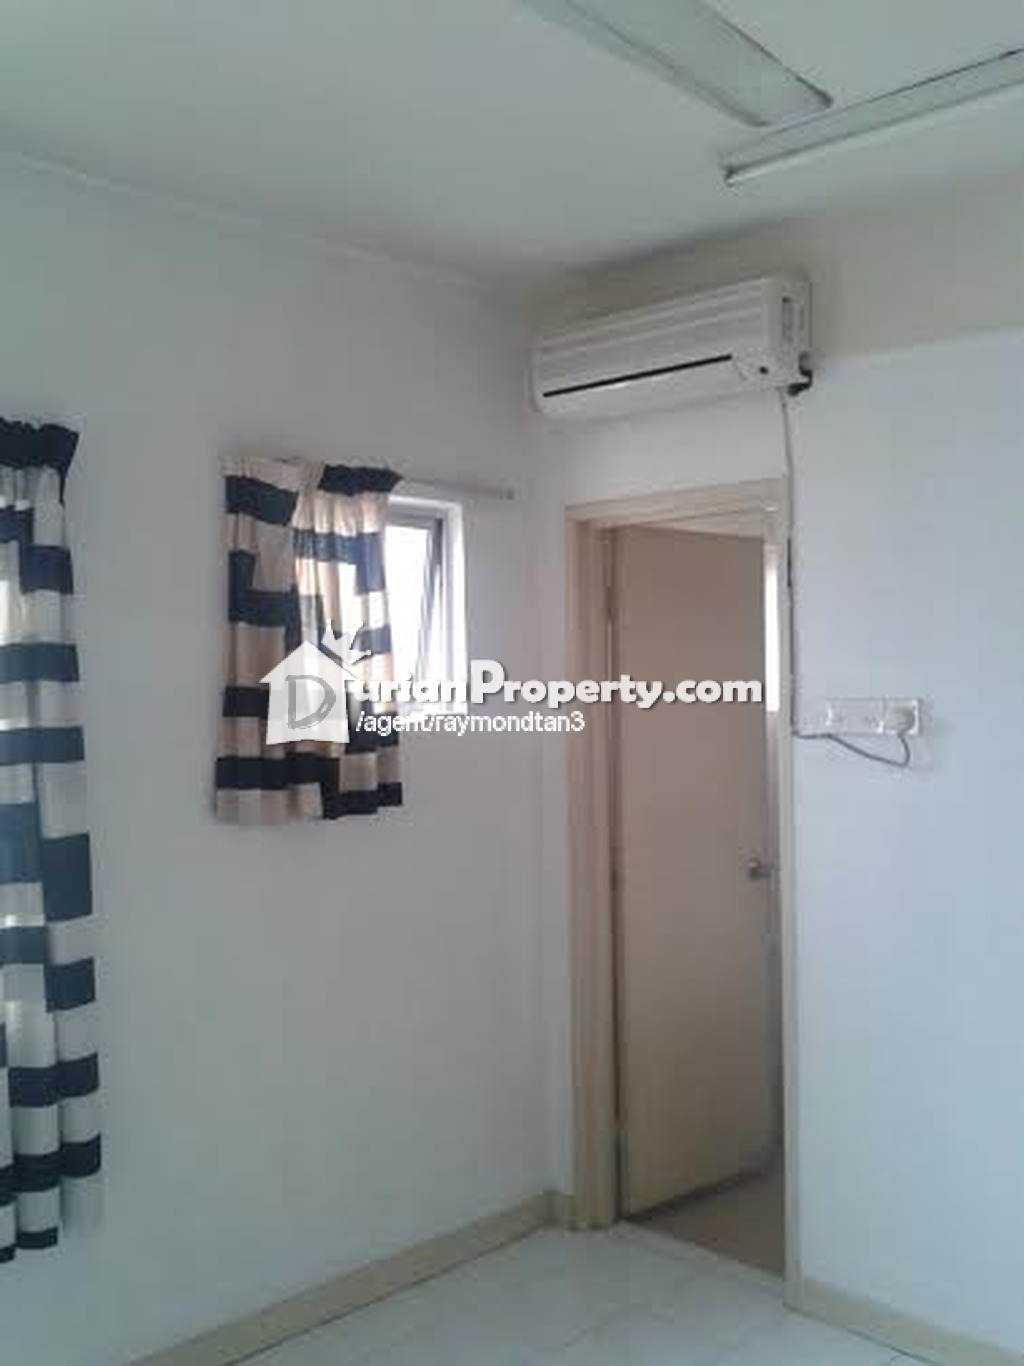 Condo For Rent At D 39 Aman Crimson Ara Damansara For Rm 1 300 By Raymond Tan Durianproperty